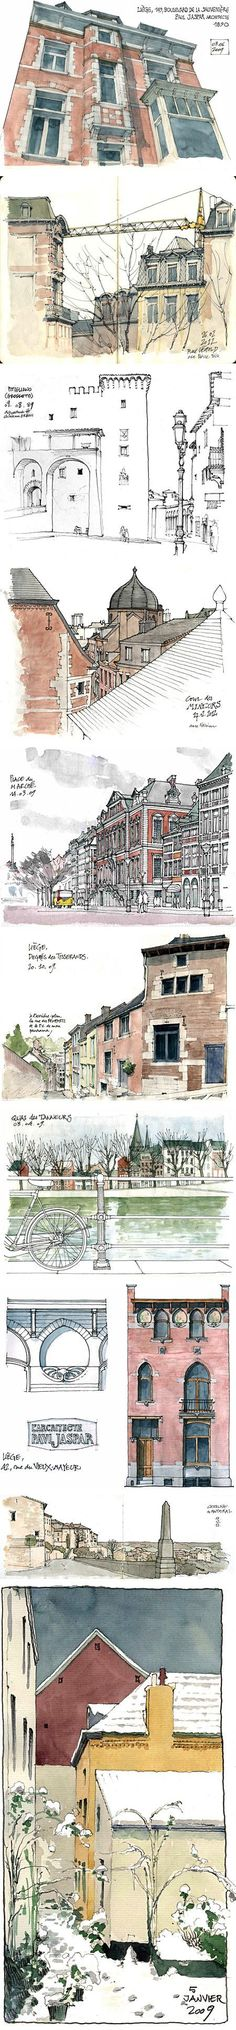 I love these line/watercolor drawings. I have a hard time with straight lines but he does an amazing job.